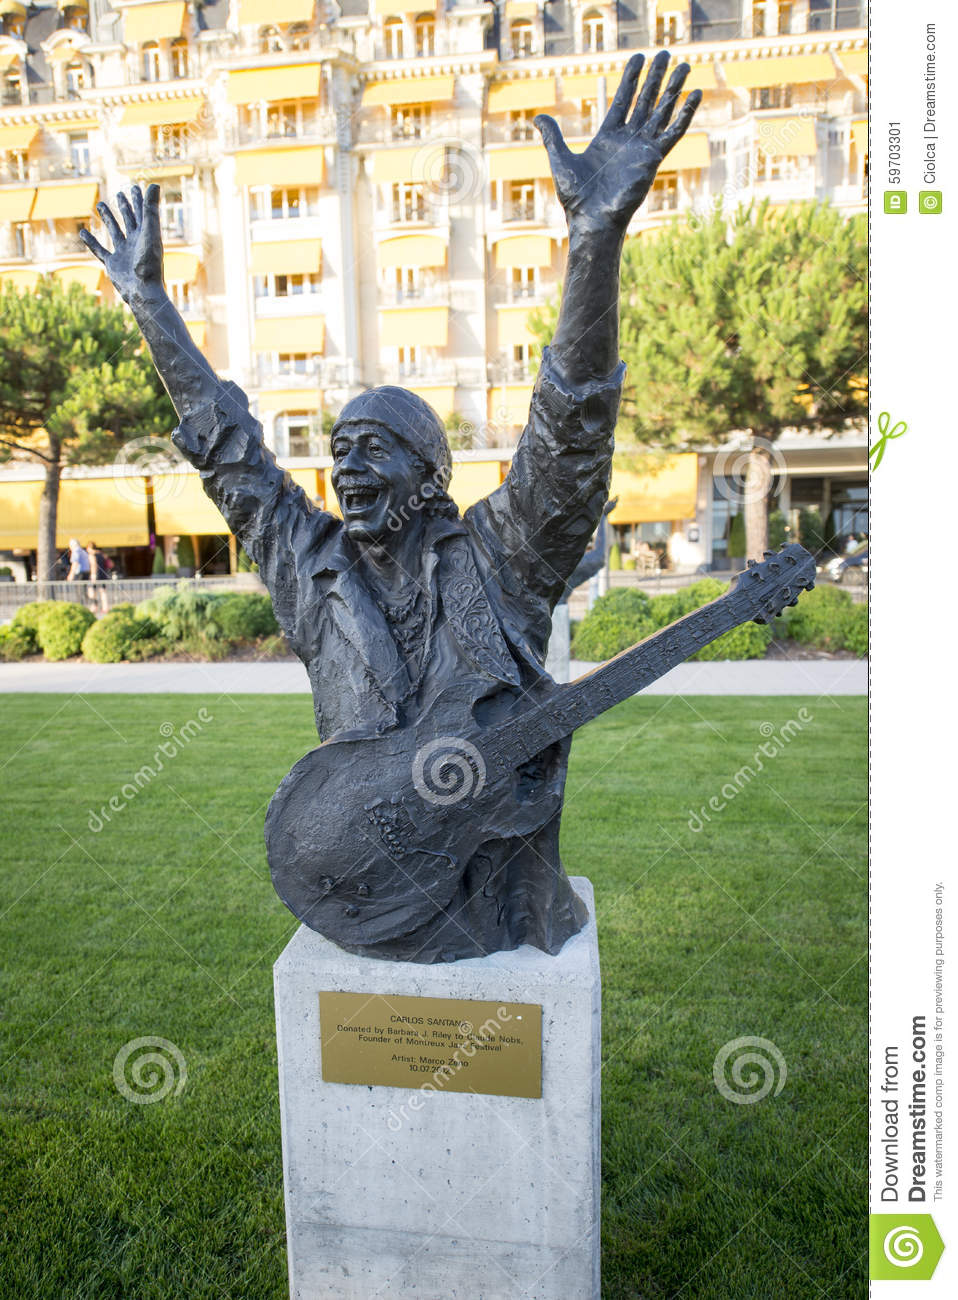 Montreux Jazz Festival 2015 >> Statue Of Carlos Santana In Montreux Editorial Photo - Image: 59703301